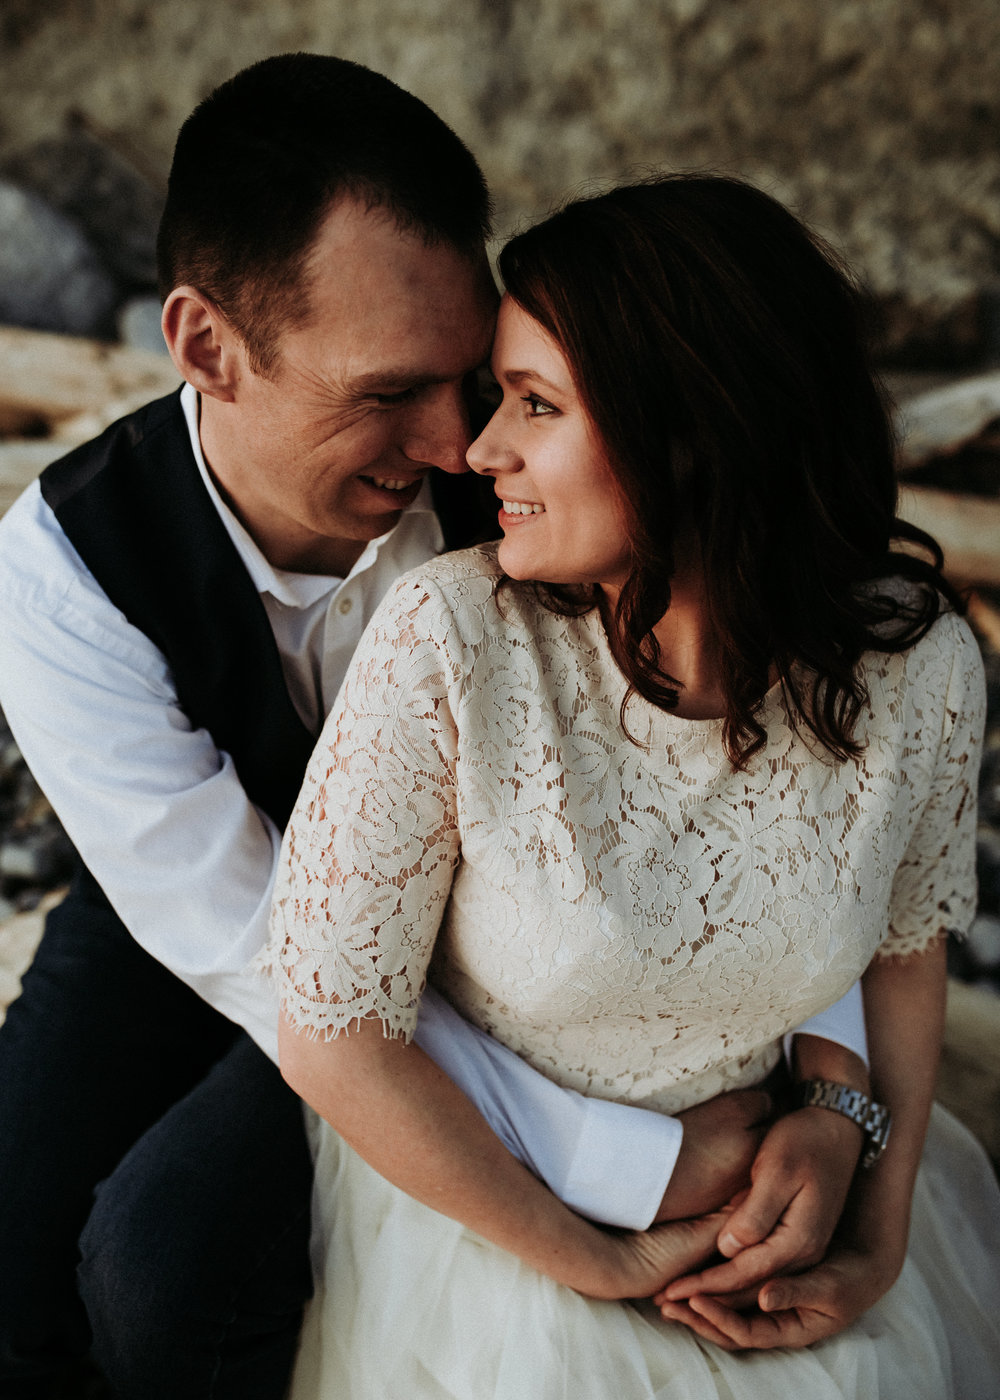 Engagement-Photographer-Bellingham-WA-Brianne-Bell-Photograpy-(Coral)-7.jpg